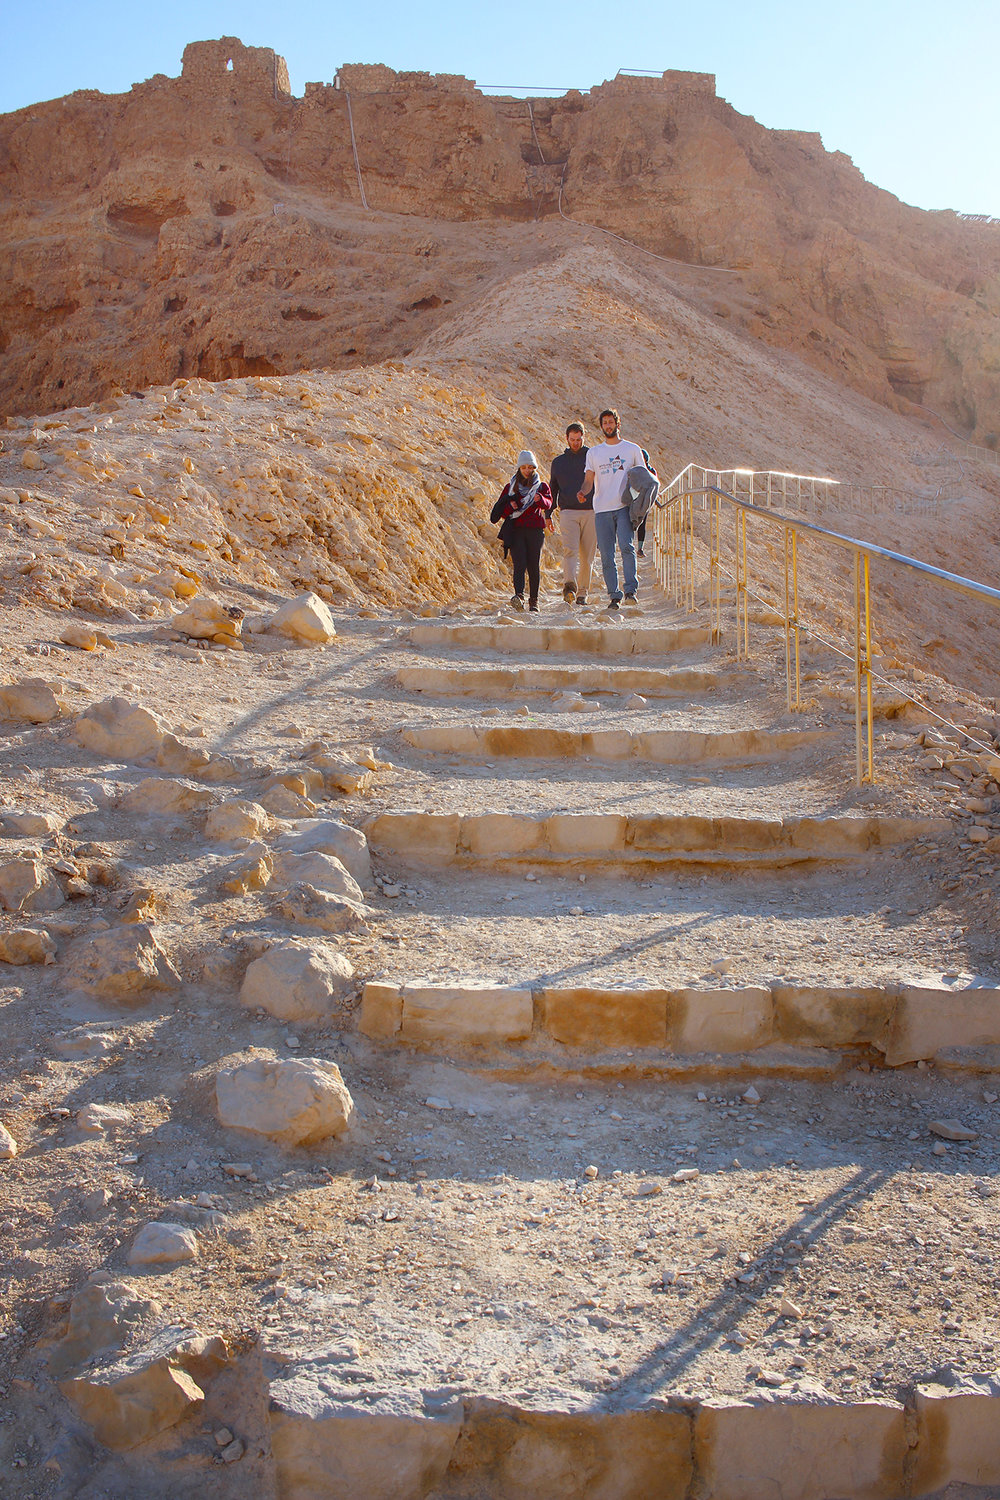 The view of lower-level Masada in the Negev Desert, Israel, 2016.